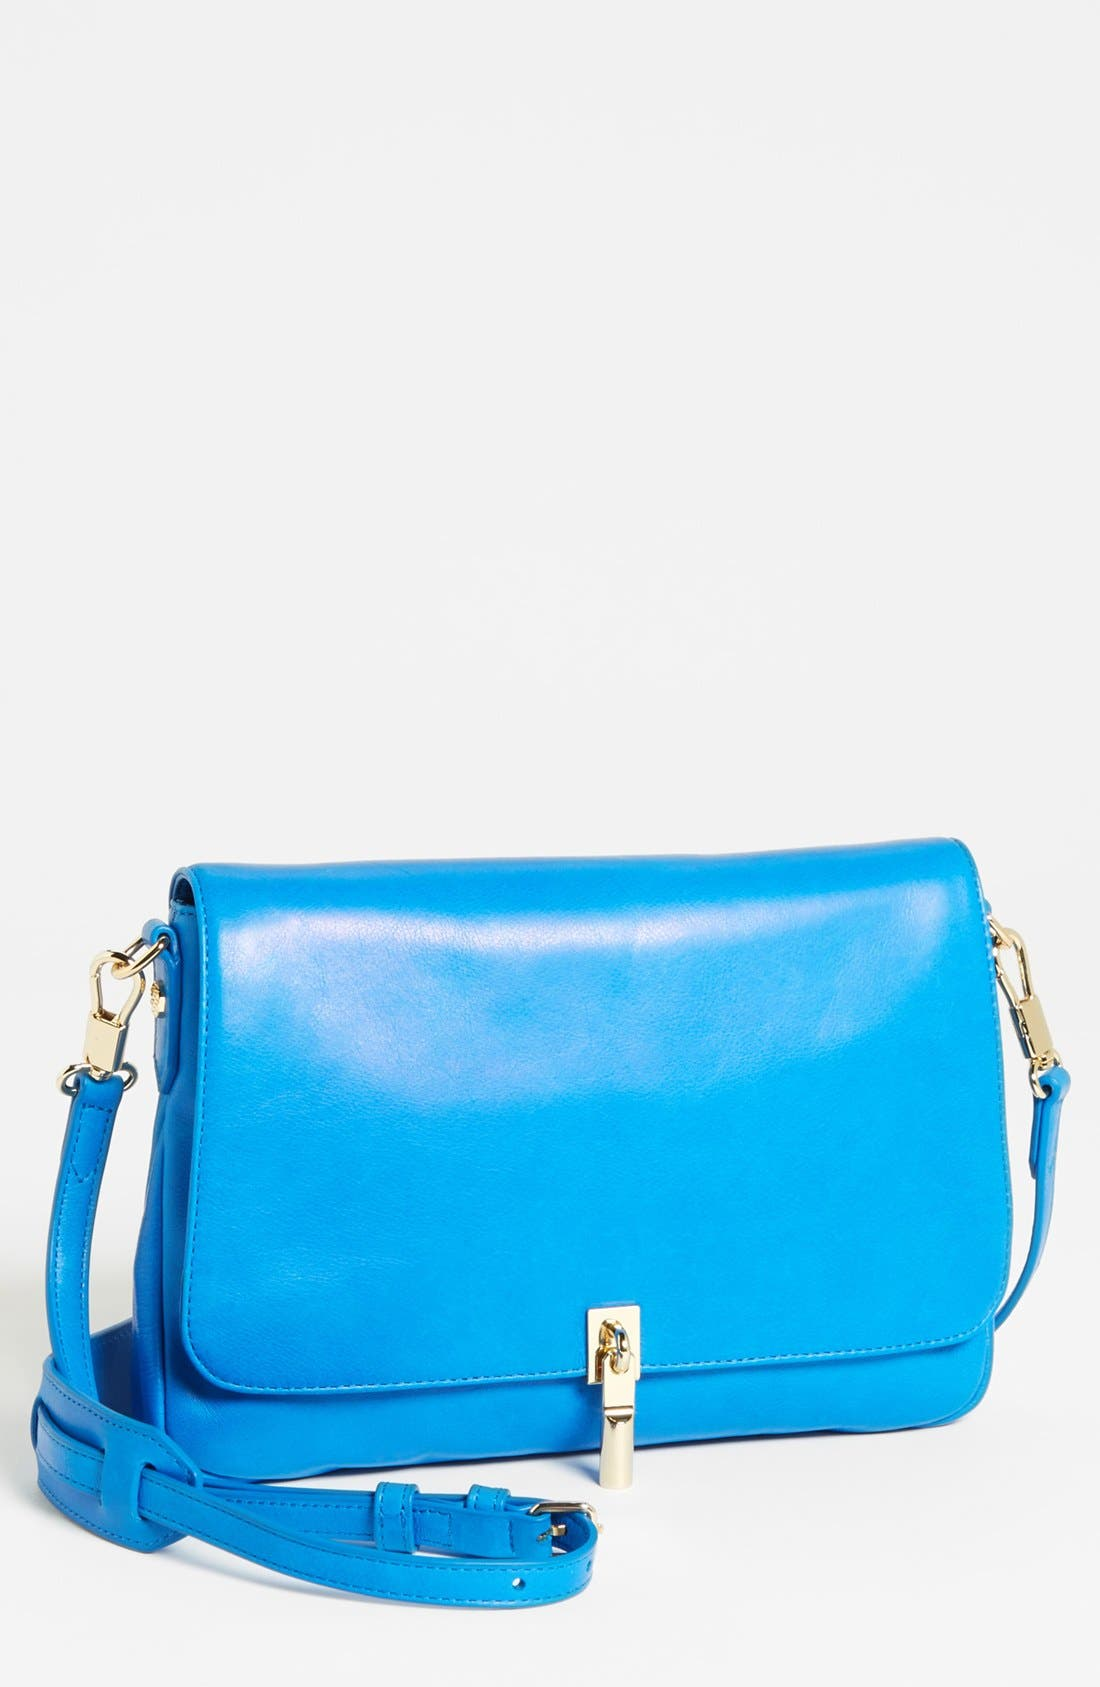 Main Image - Elizabeth and James 'Mini' Coated Leather Crossbody Bag